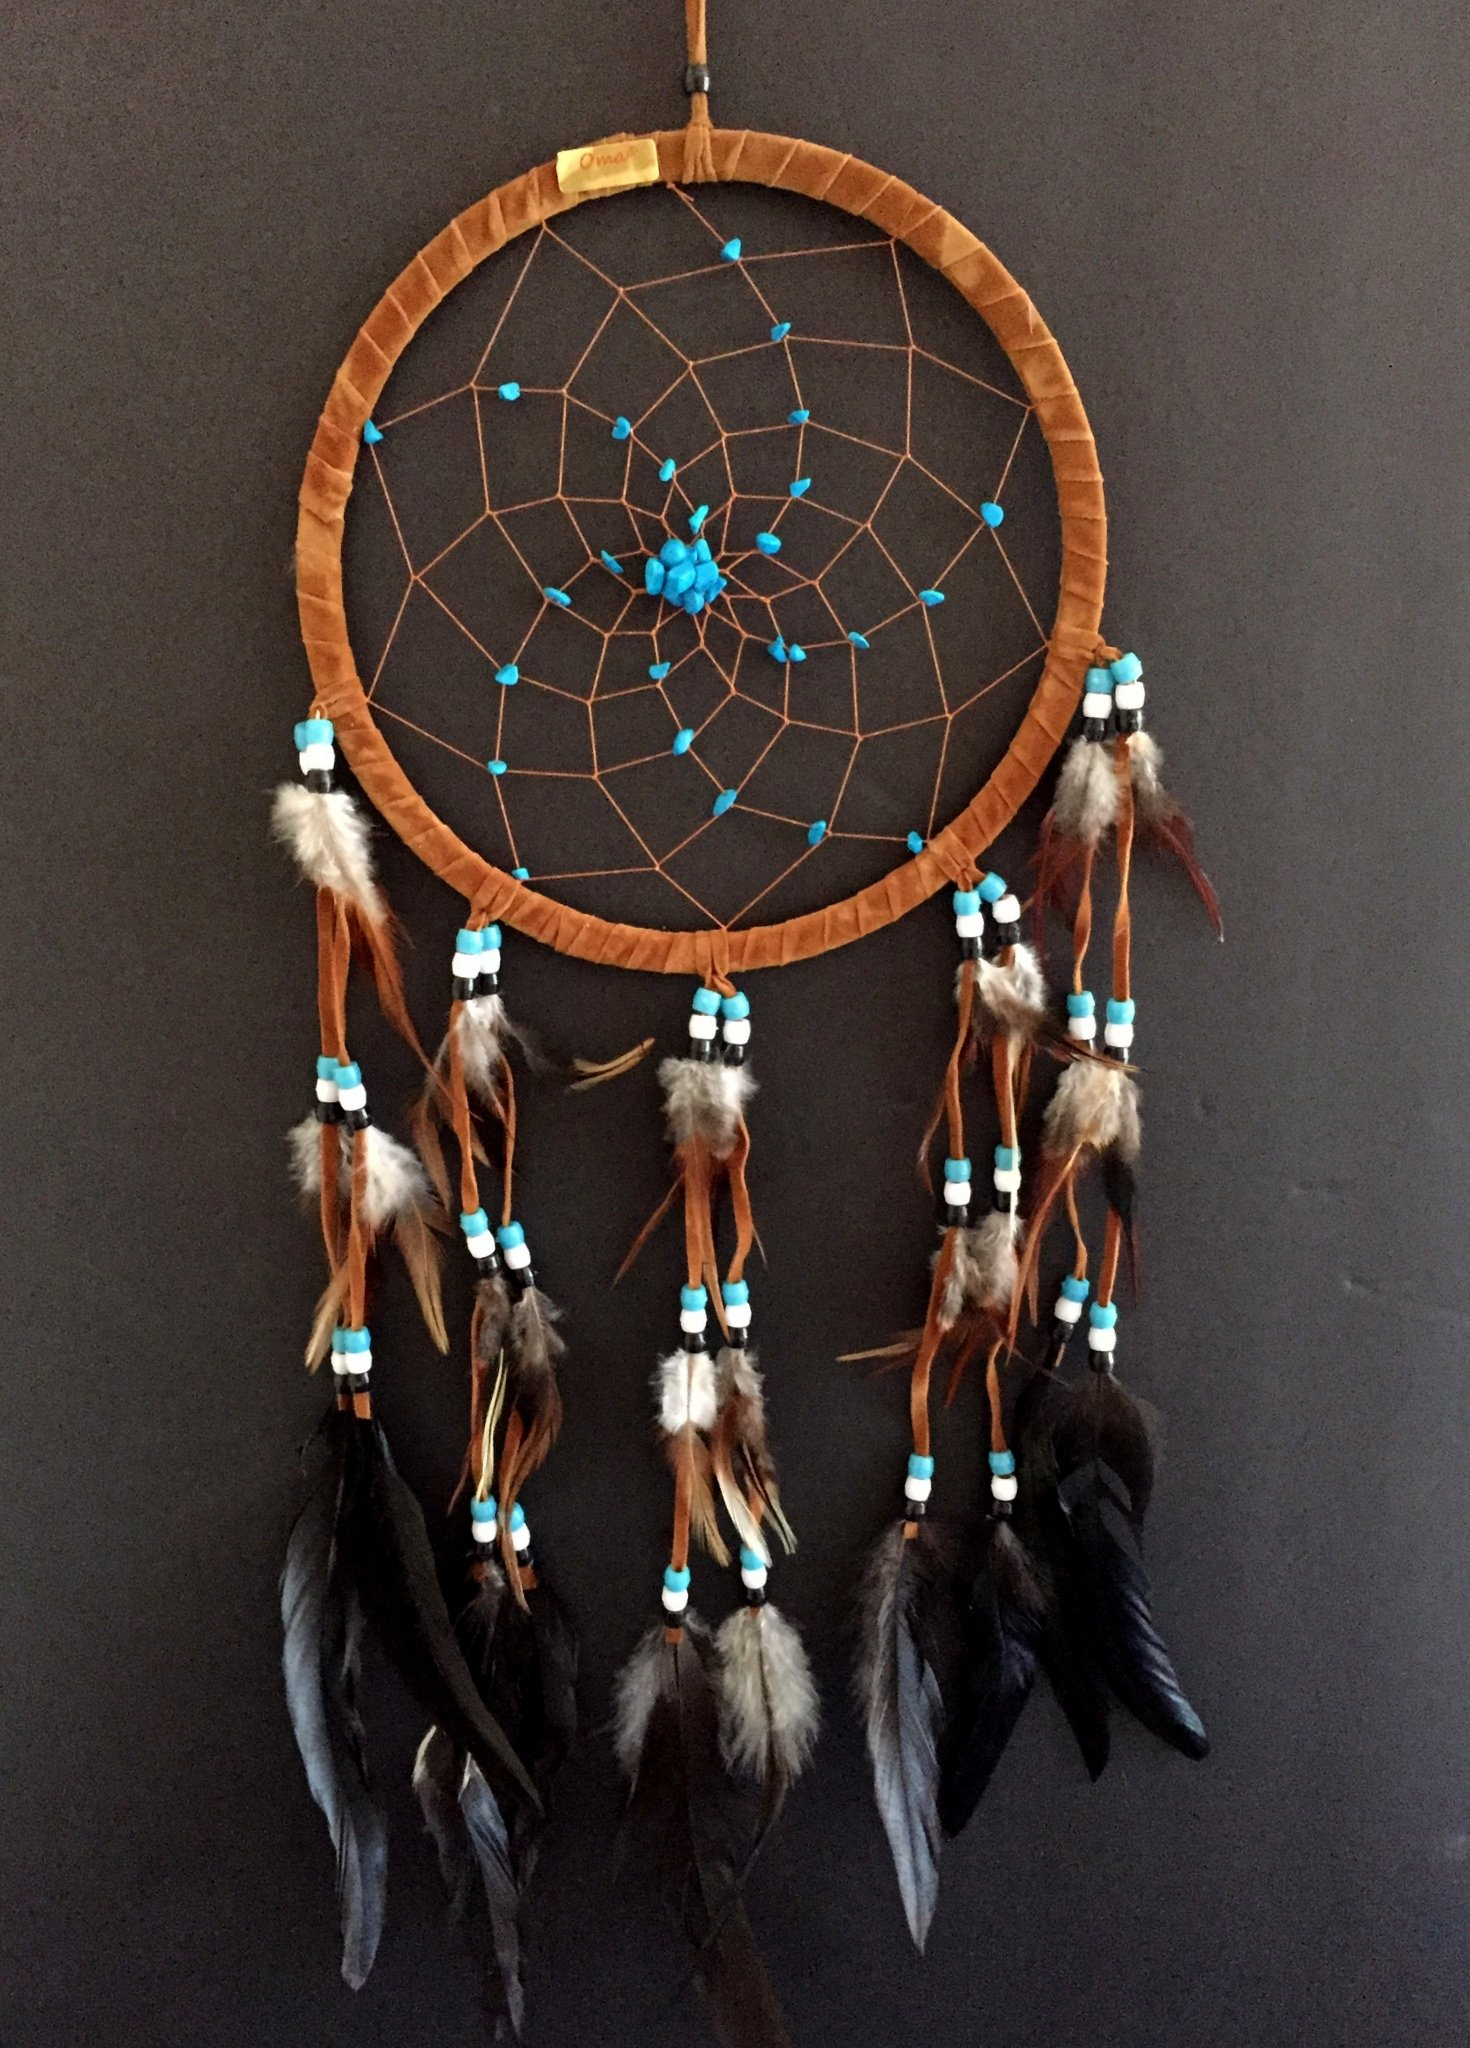 Dream Catcher DreamCatcher - BROWN SUEDE WITH TURQUOISE DETAILS - Handmade, LARGE SIZE - 28'' Long x 9'' Diameter - OMA BRAND